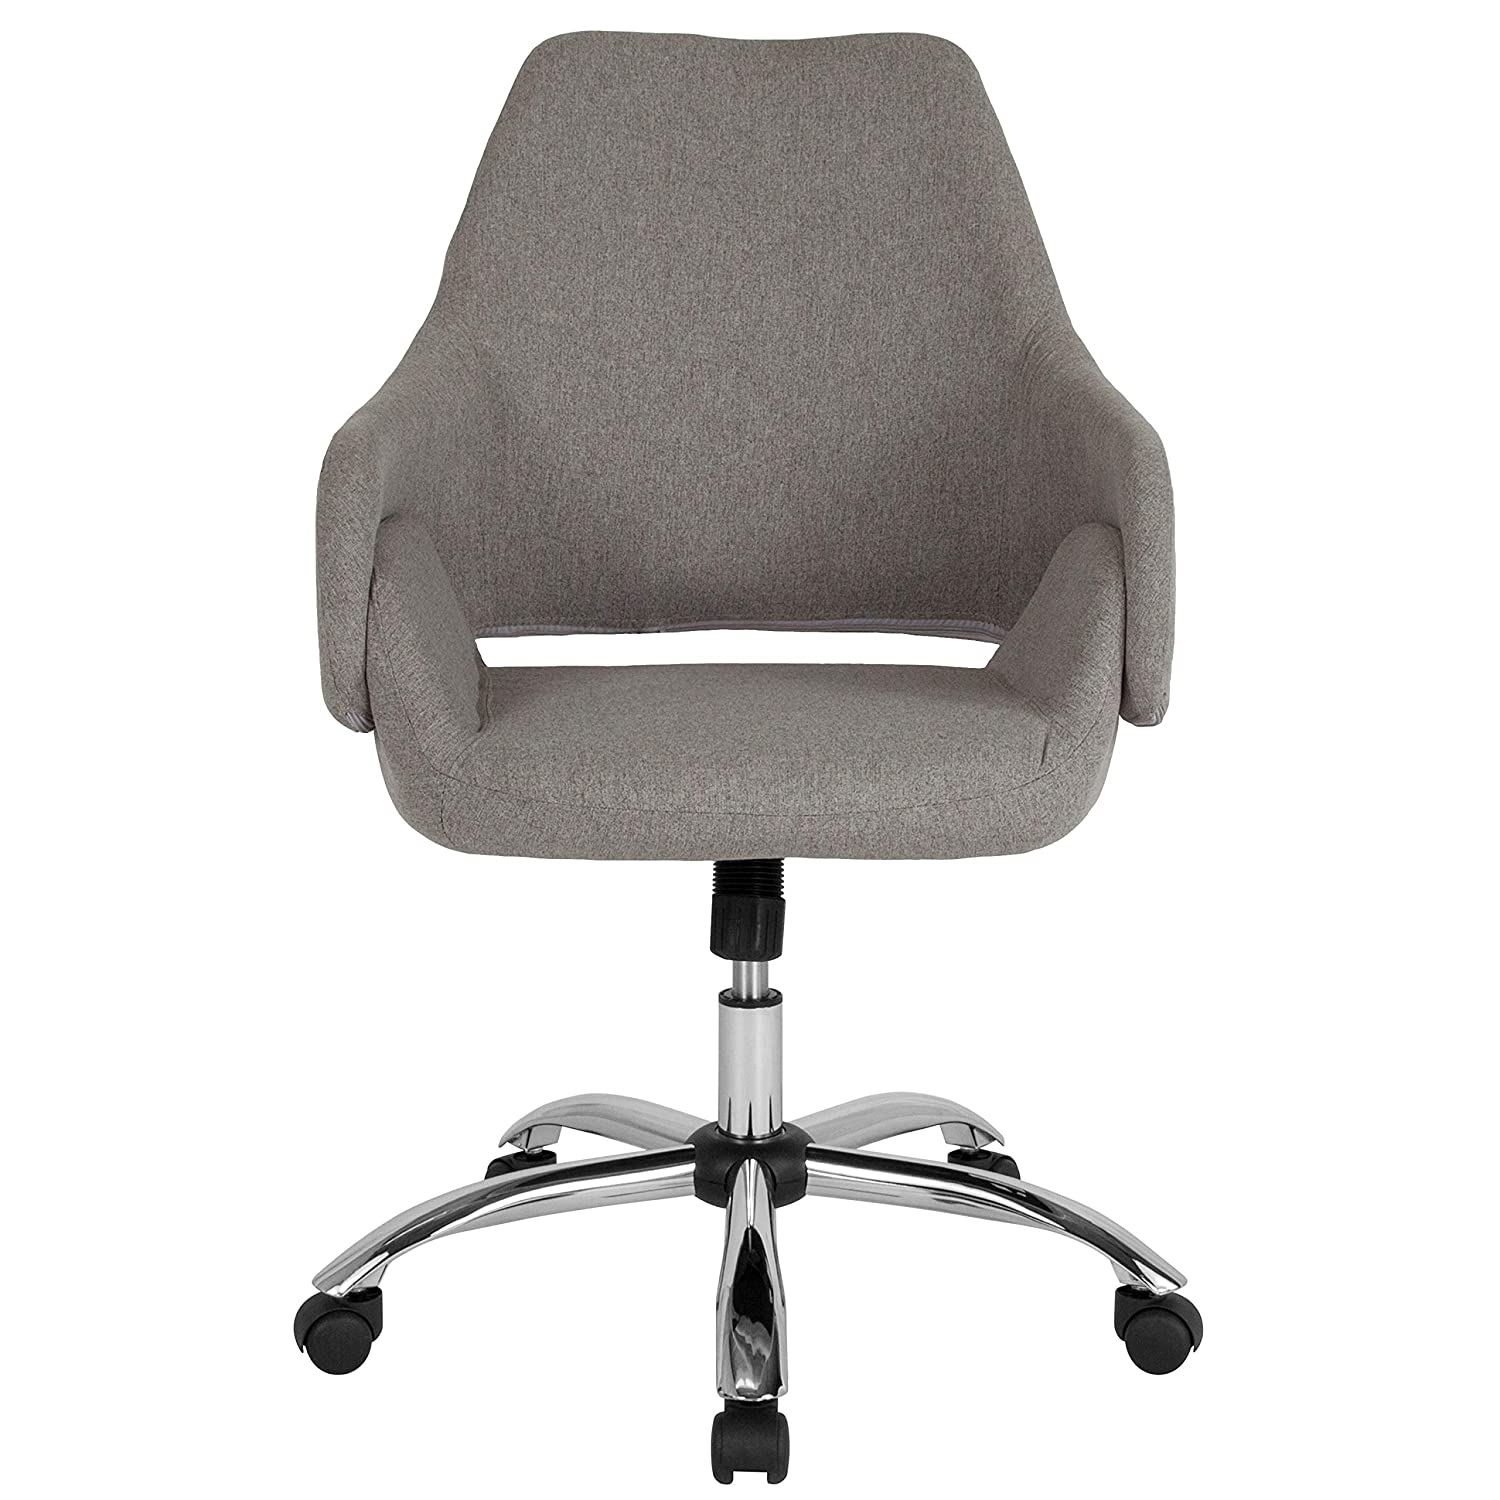 Amazon.com : ERGONOMIC HOME Madrid Home and Office ...